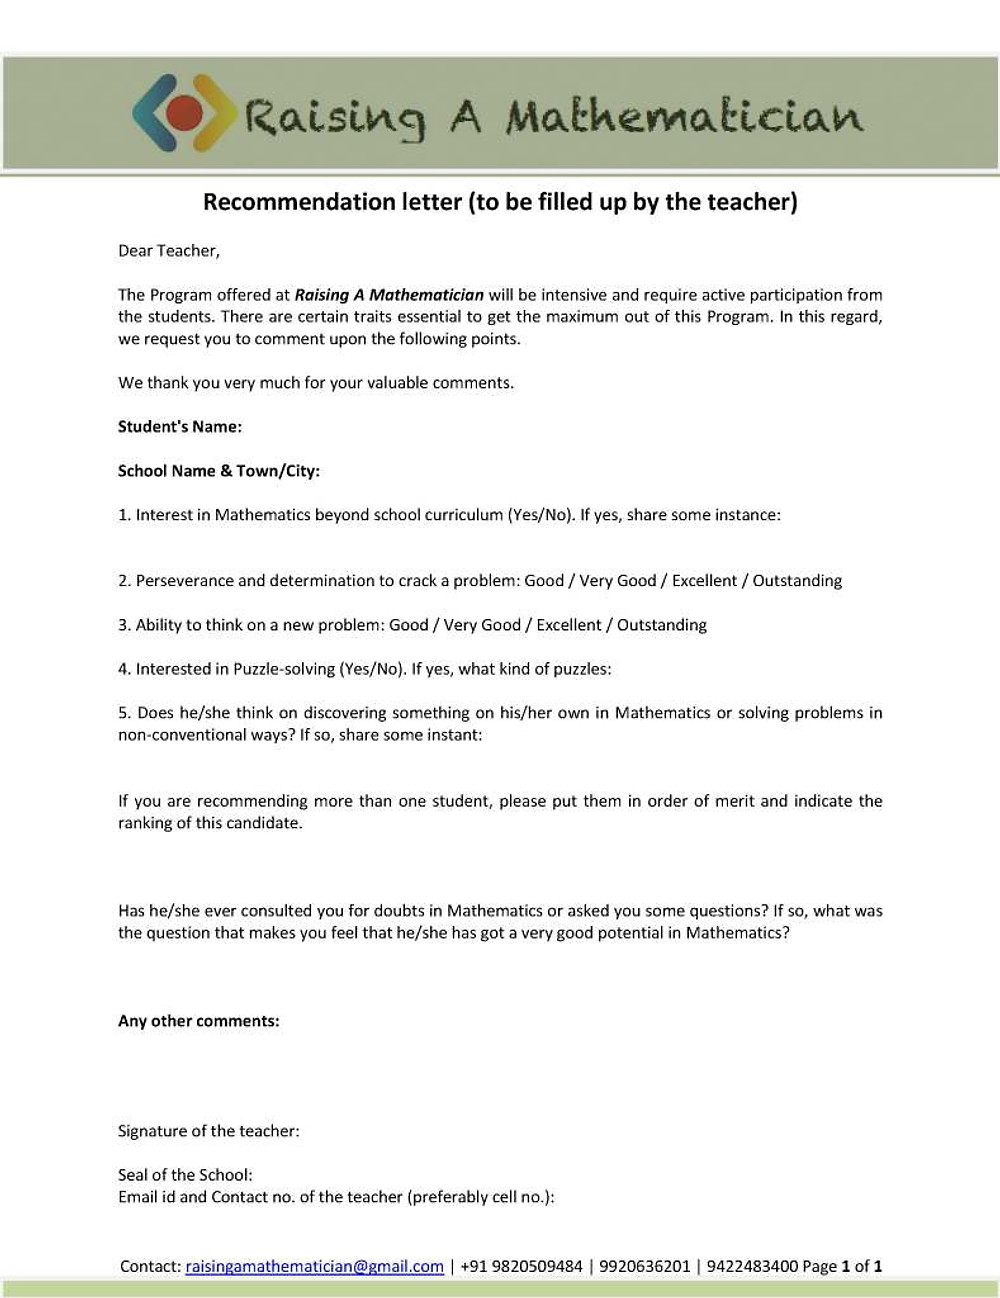 5. Recommendation letter by teacher